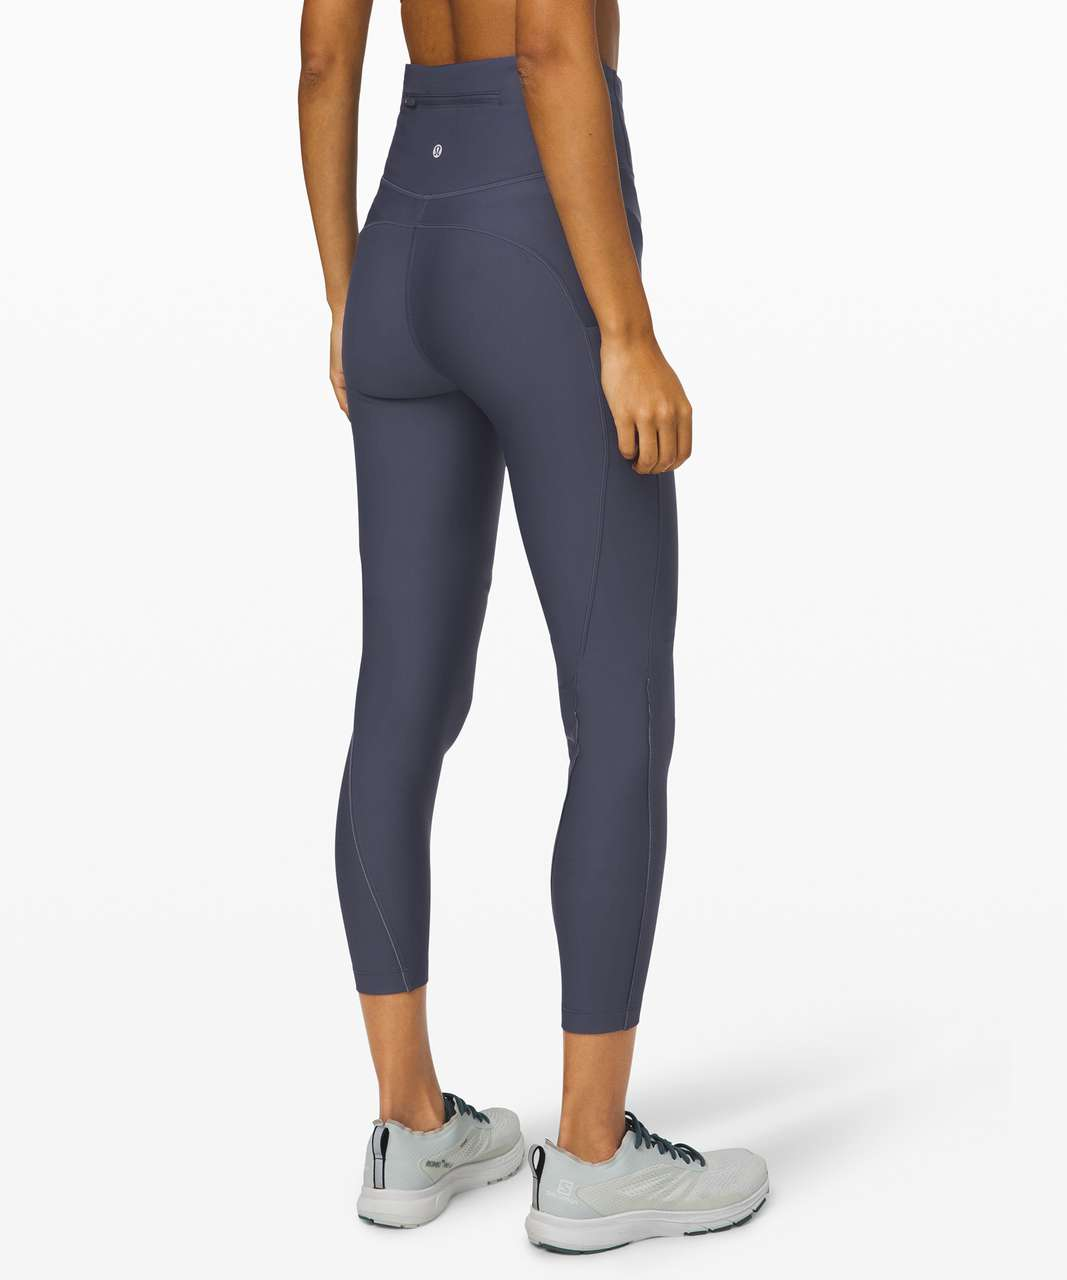 "Lululemon Flurry Up Super High-Rise Tight 28"" - Stone Blue"